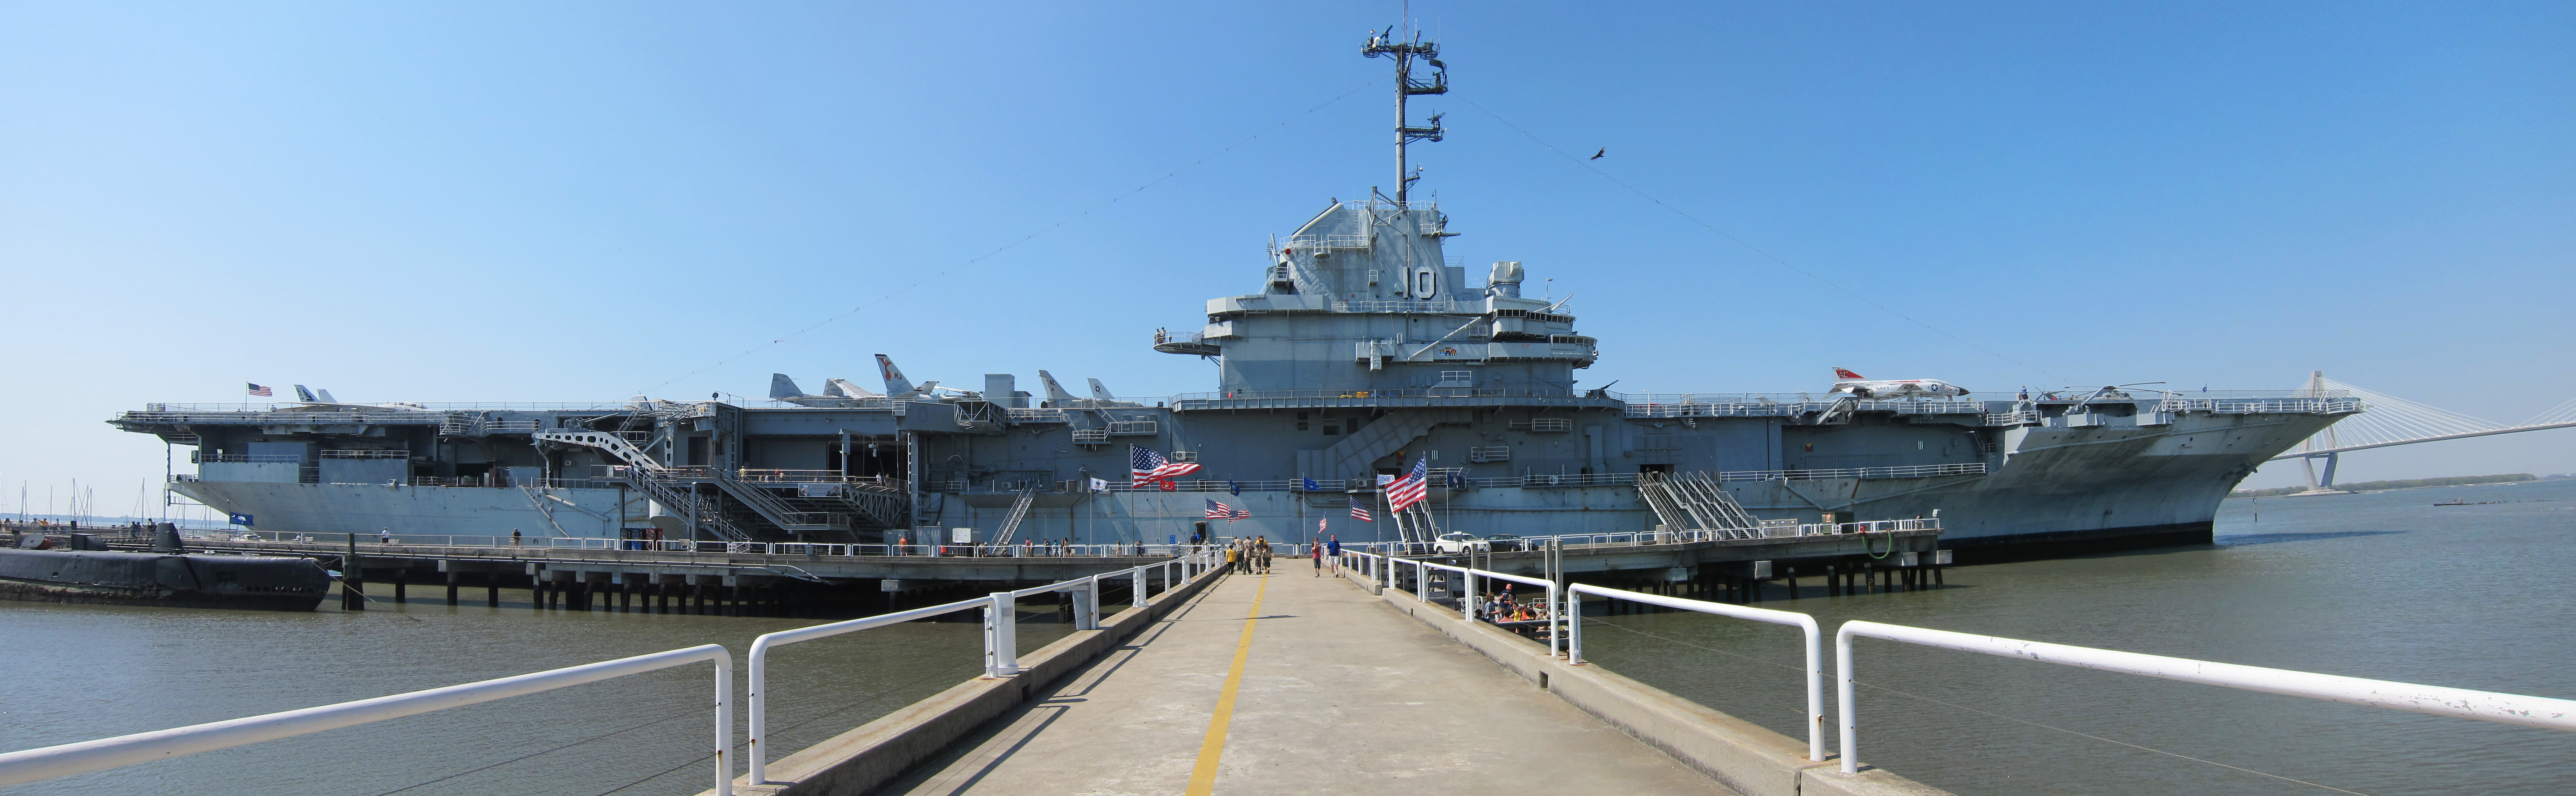 A Maritime Haunting The Ghosts Of The Uss Yorktown Cv